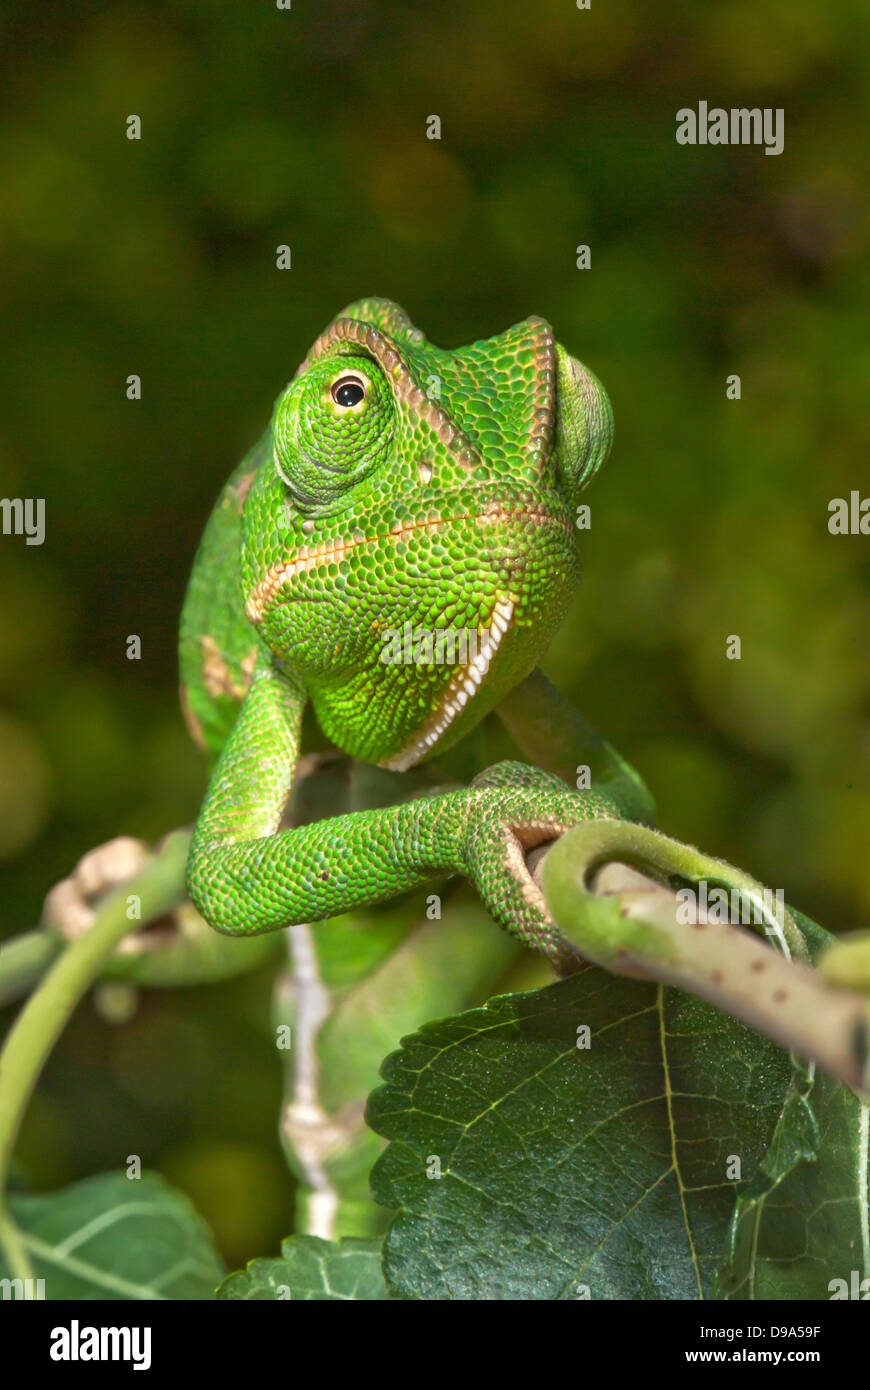 Chameleon in frontal view - Stock Image